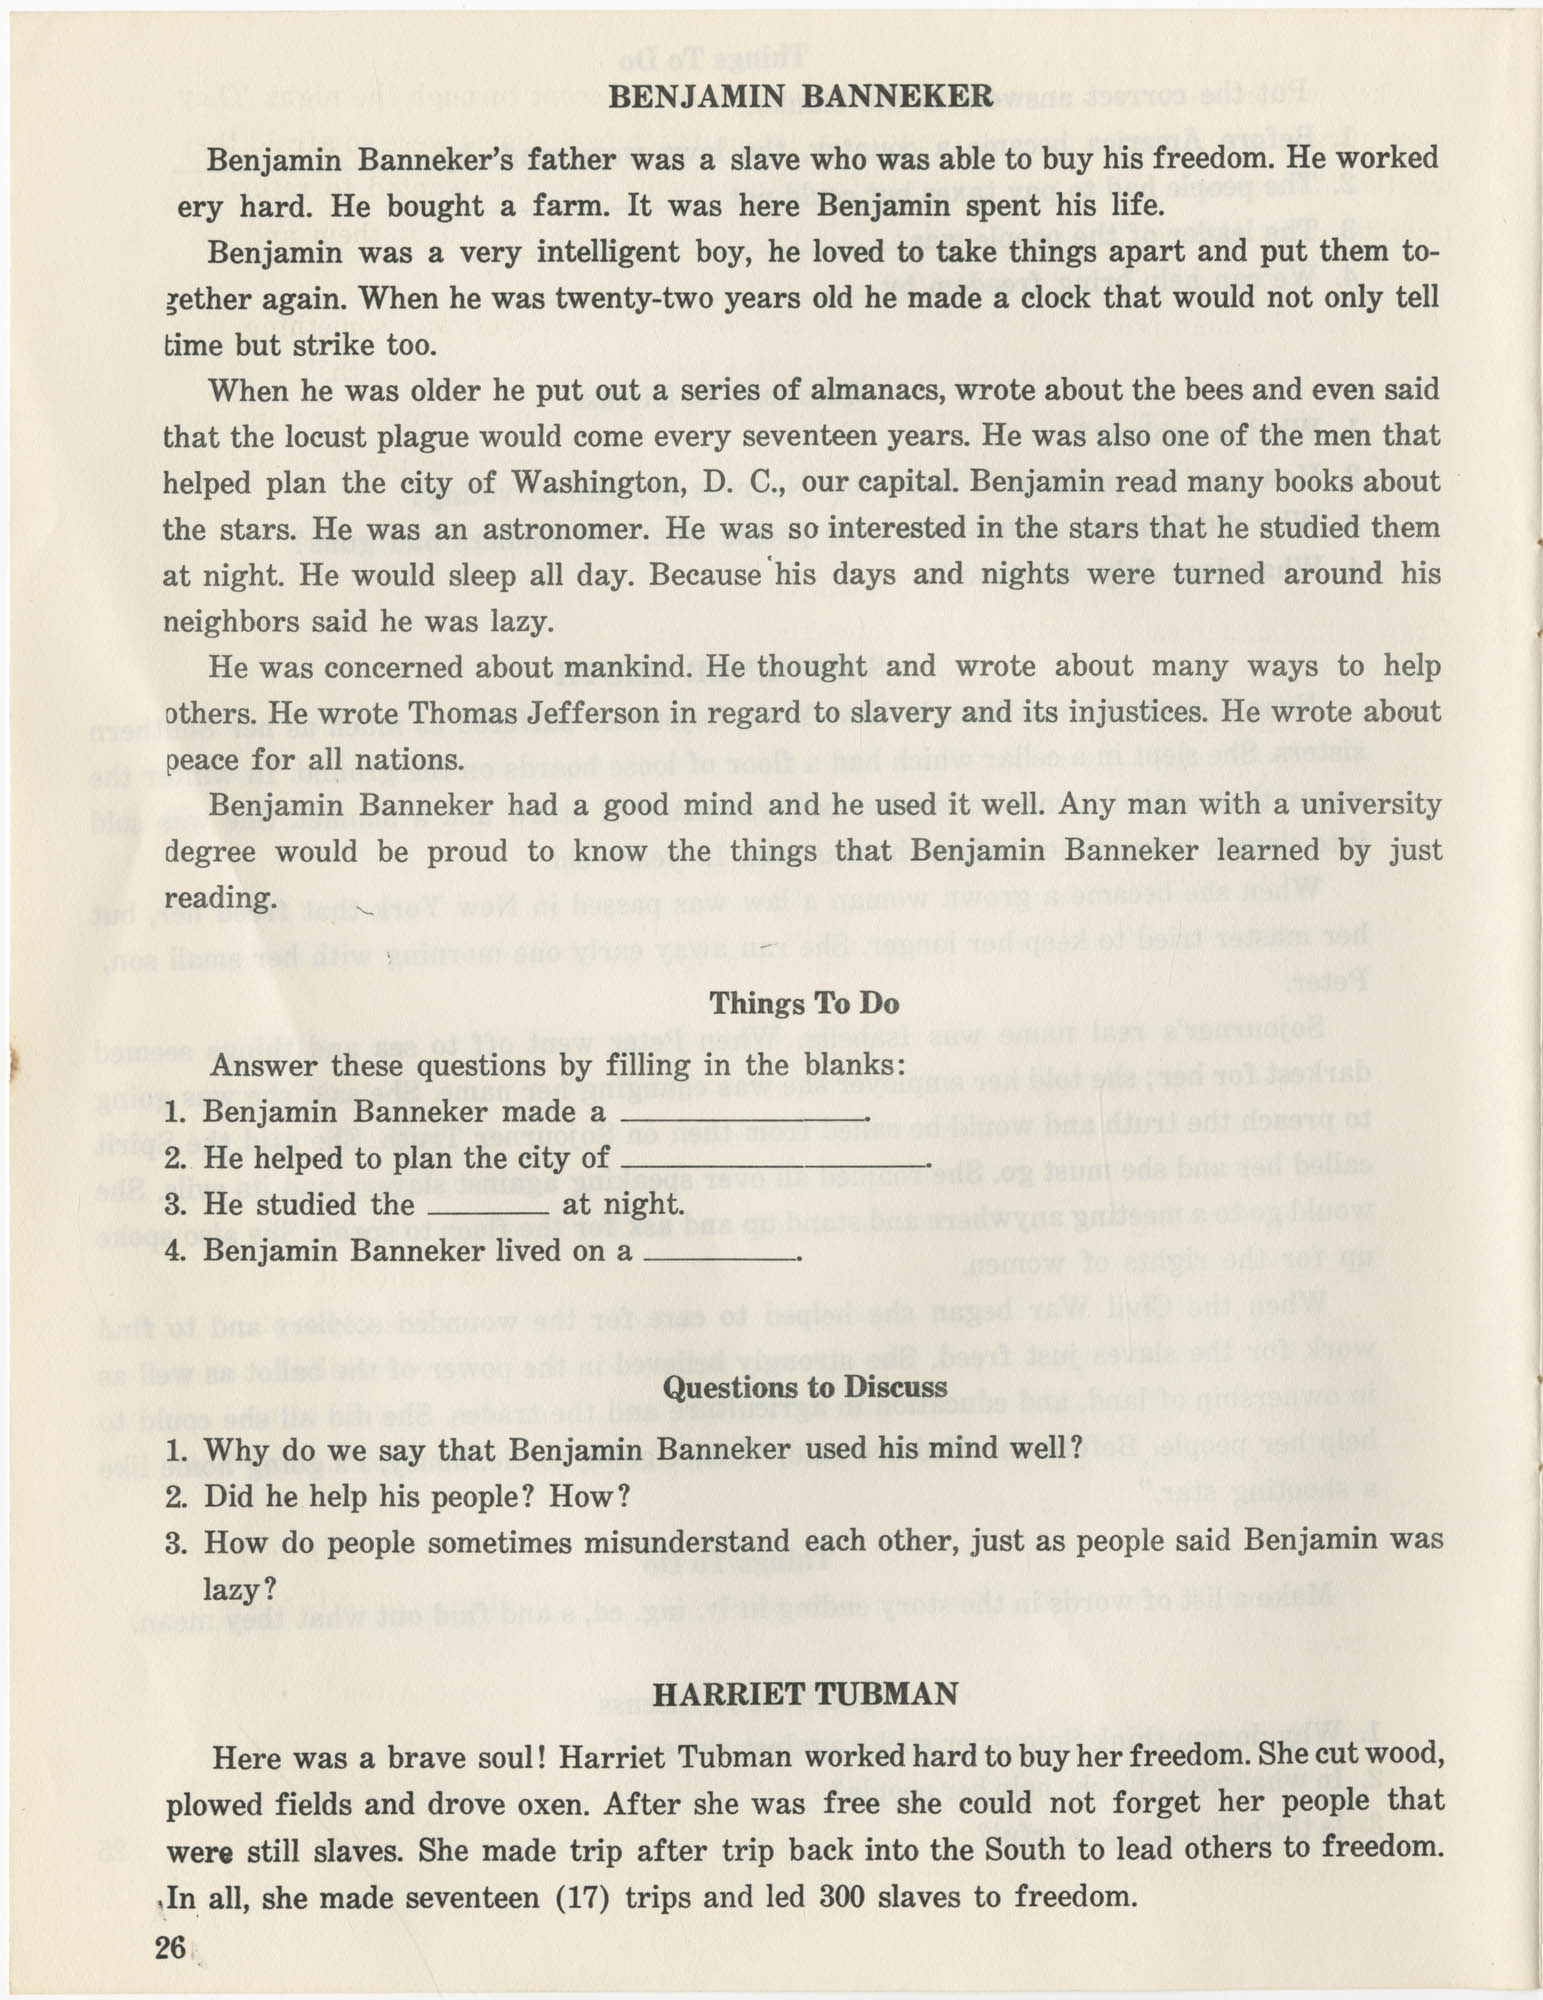 Southern Christian Leadership Conference Citizenship School Workbook, Page 26